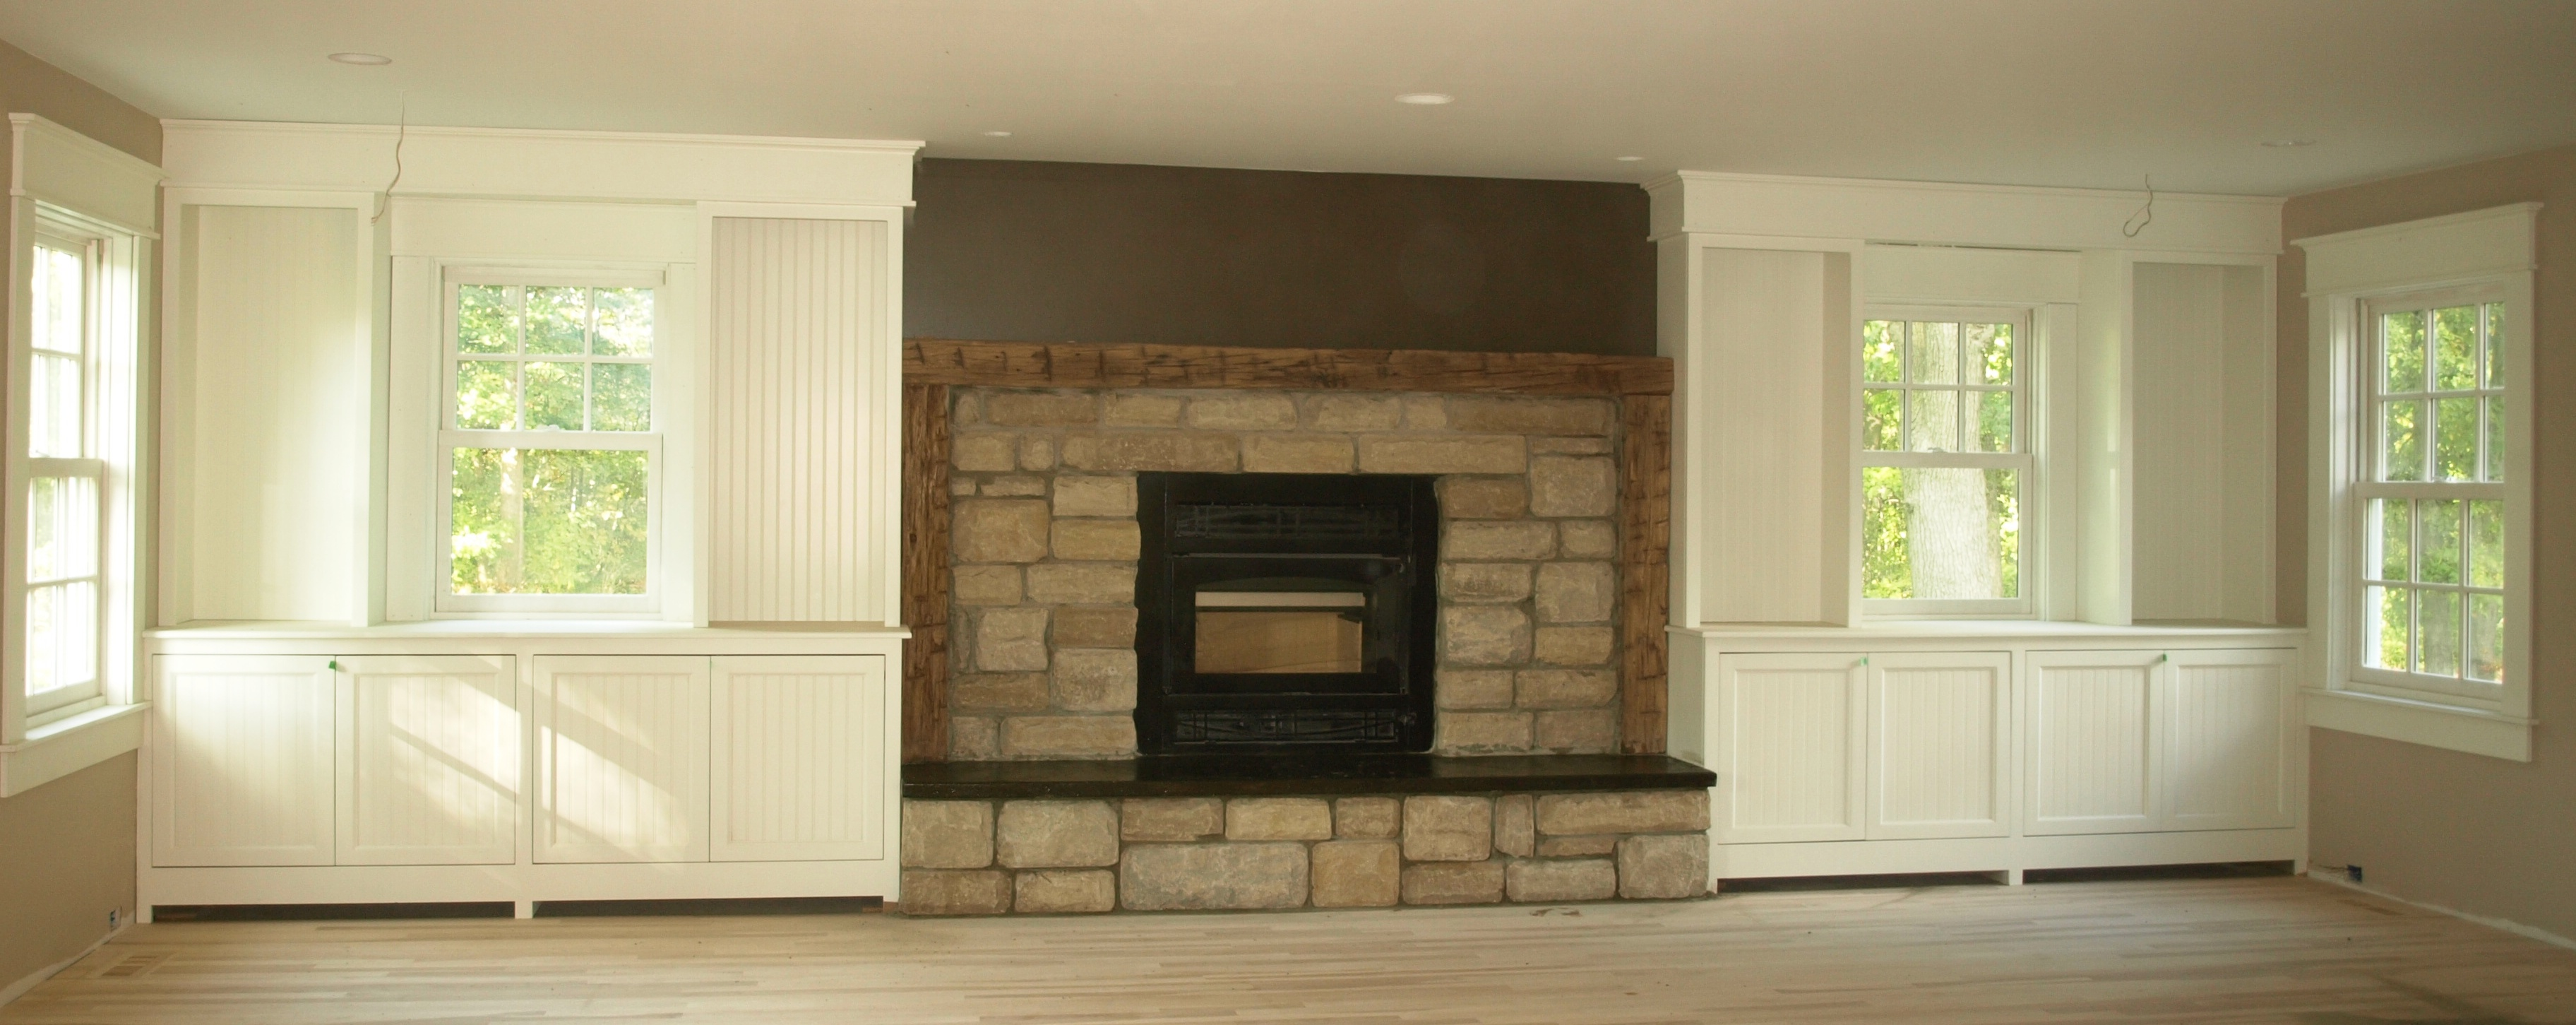 fireplace surround bookcase plans